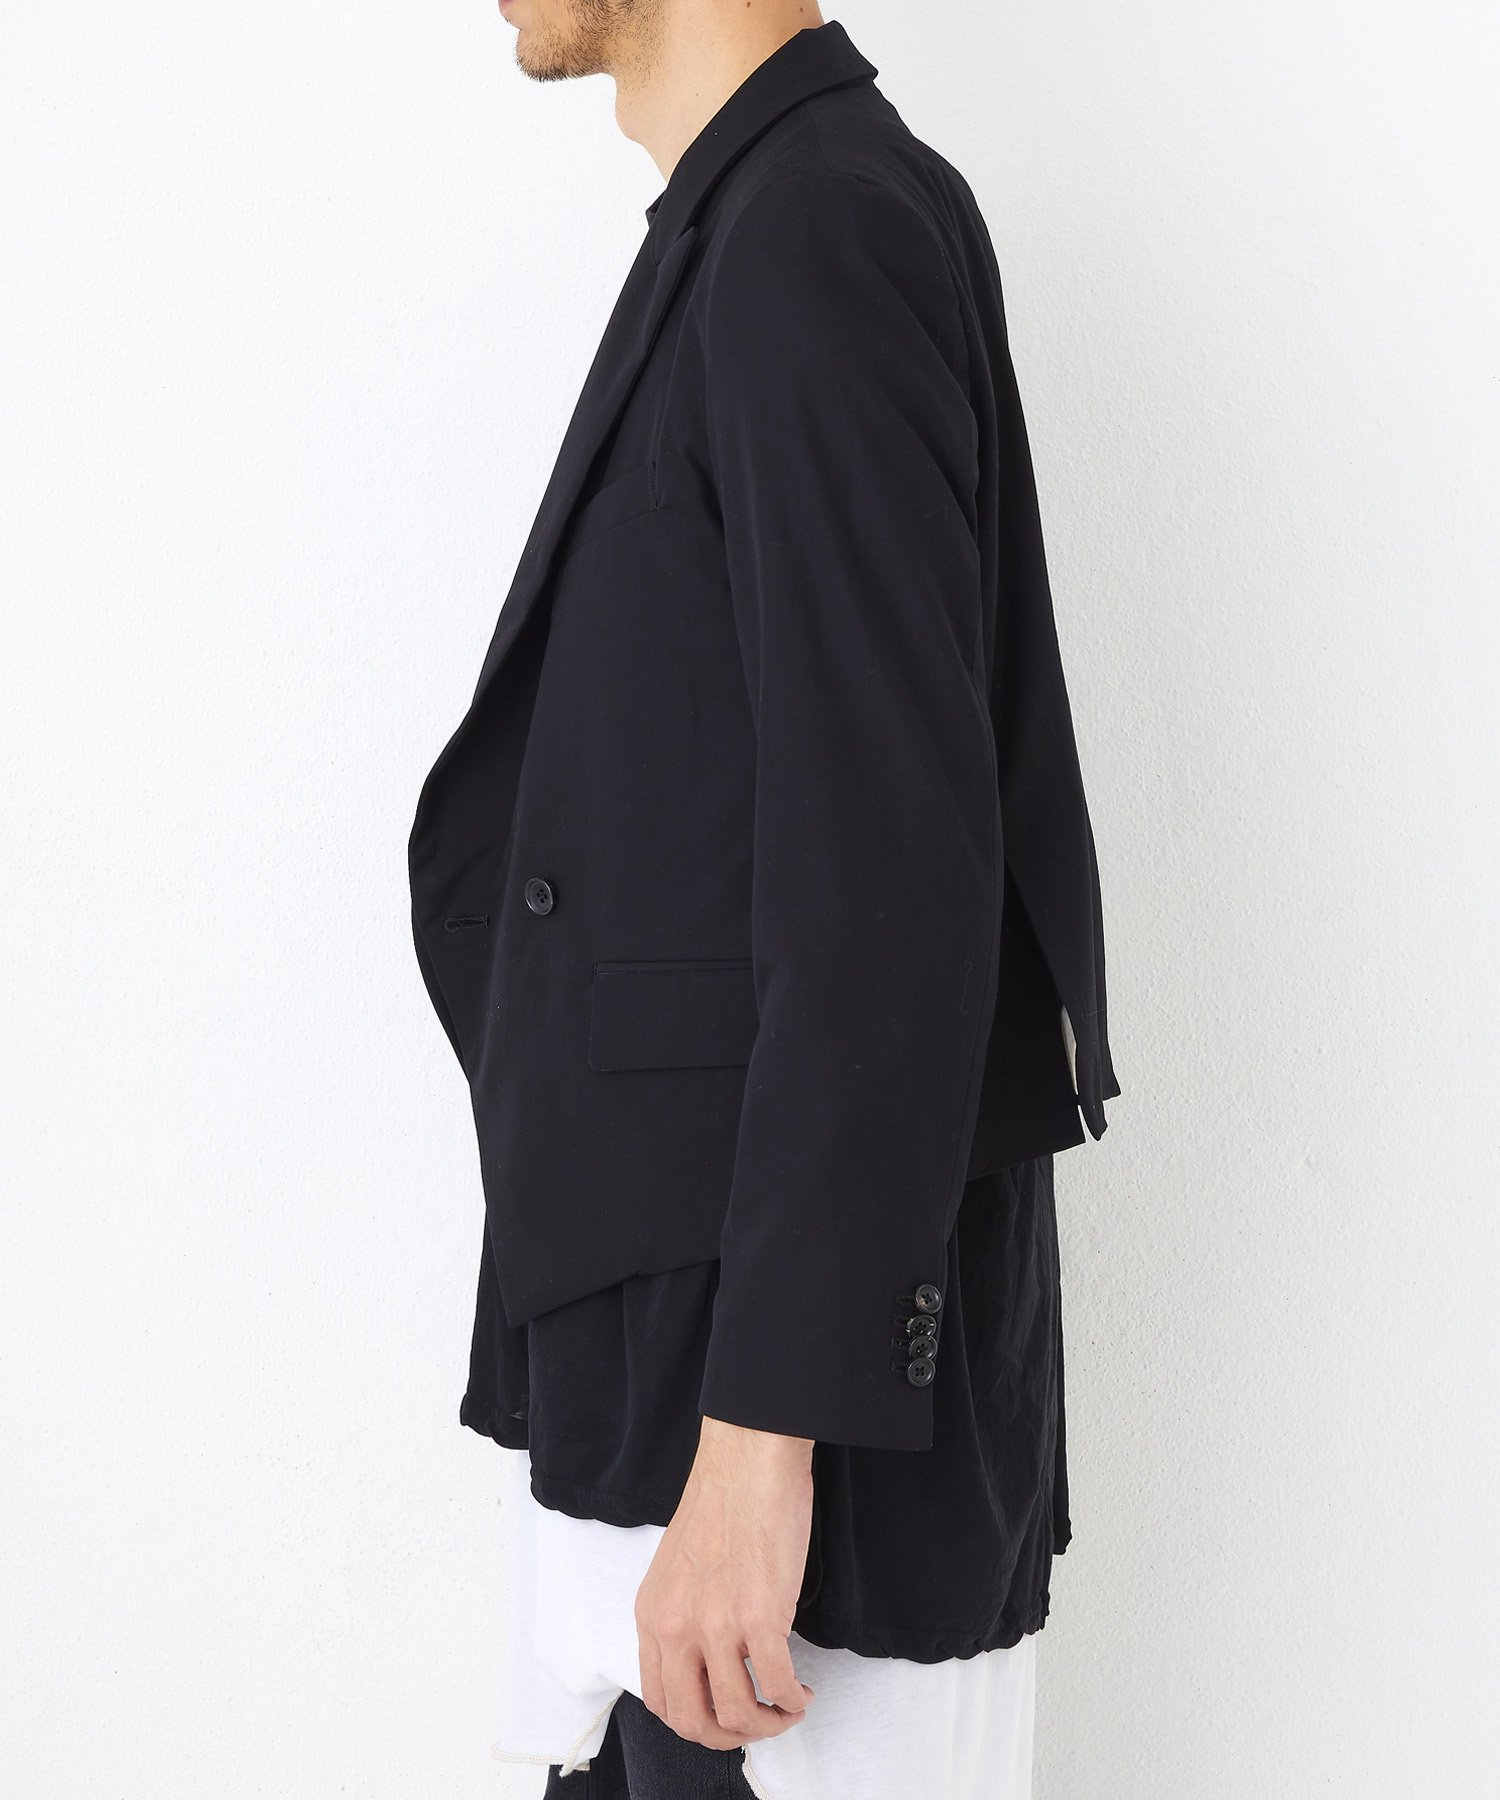 W TAILORED JKT【Black】